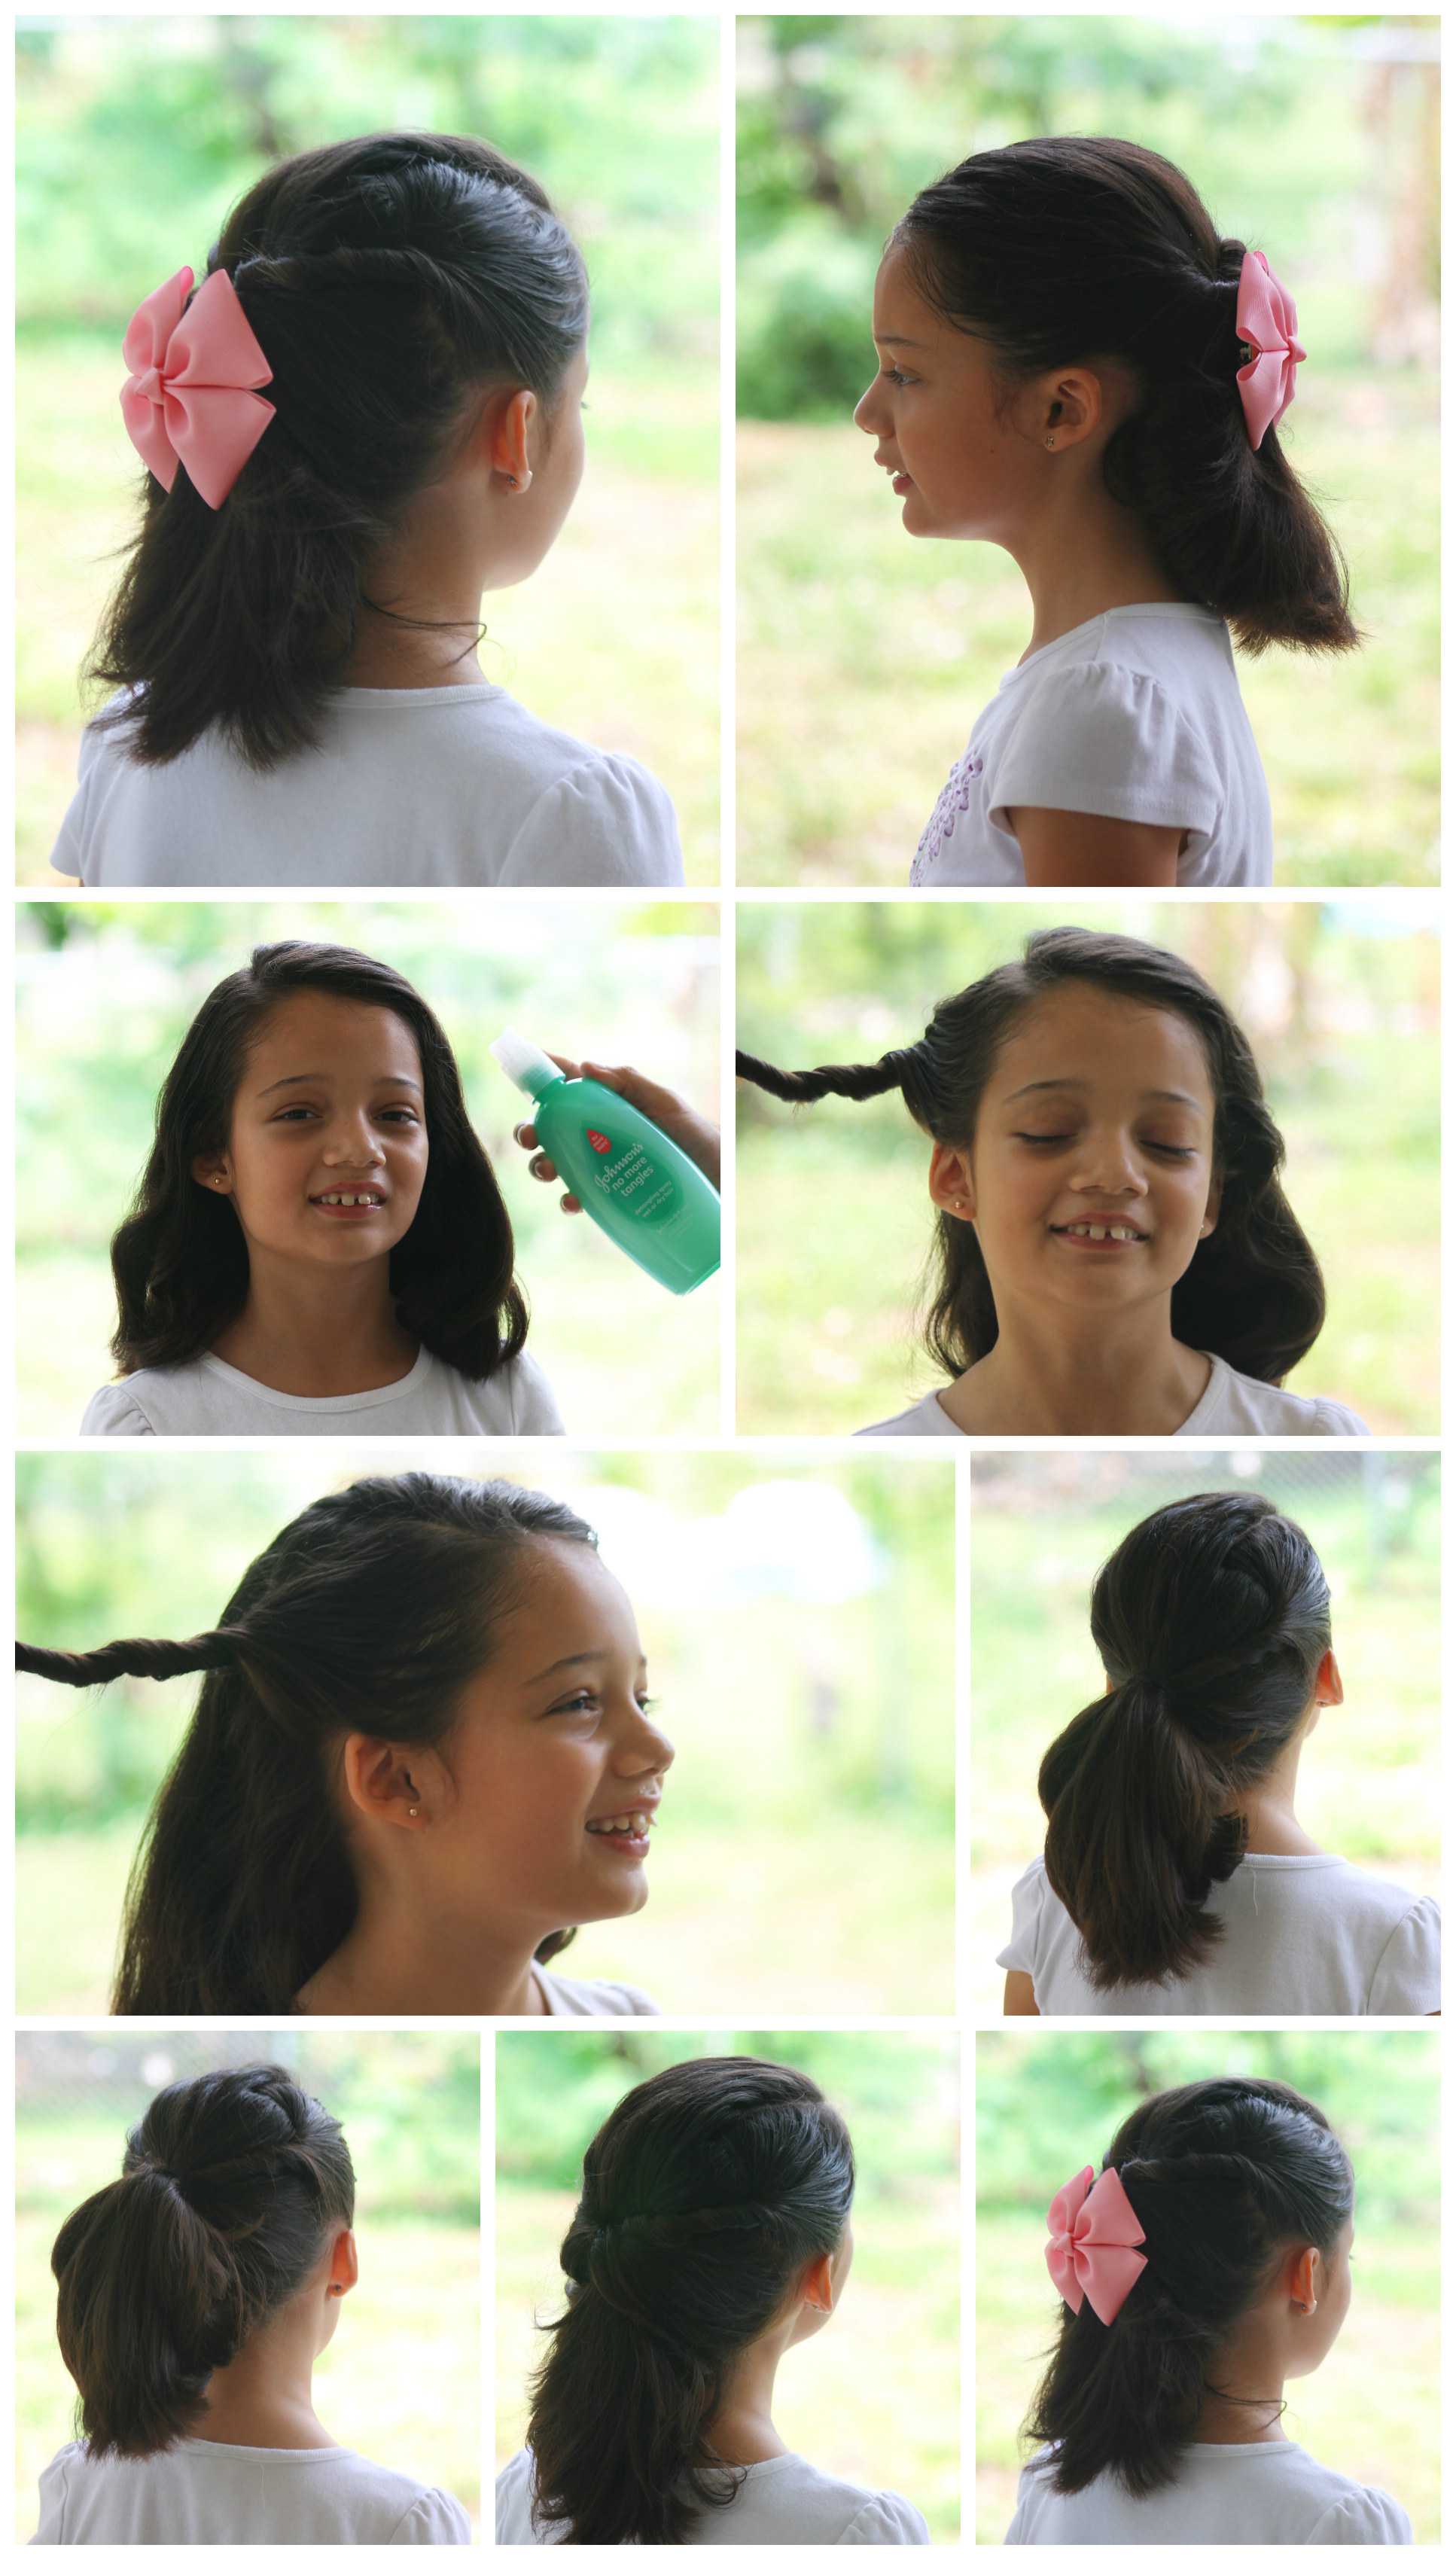 5 Minute Hairstyles For Girls From Crazy Hair To Princess Hair Easy 5 Minute Hairdo For Girls